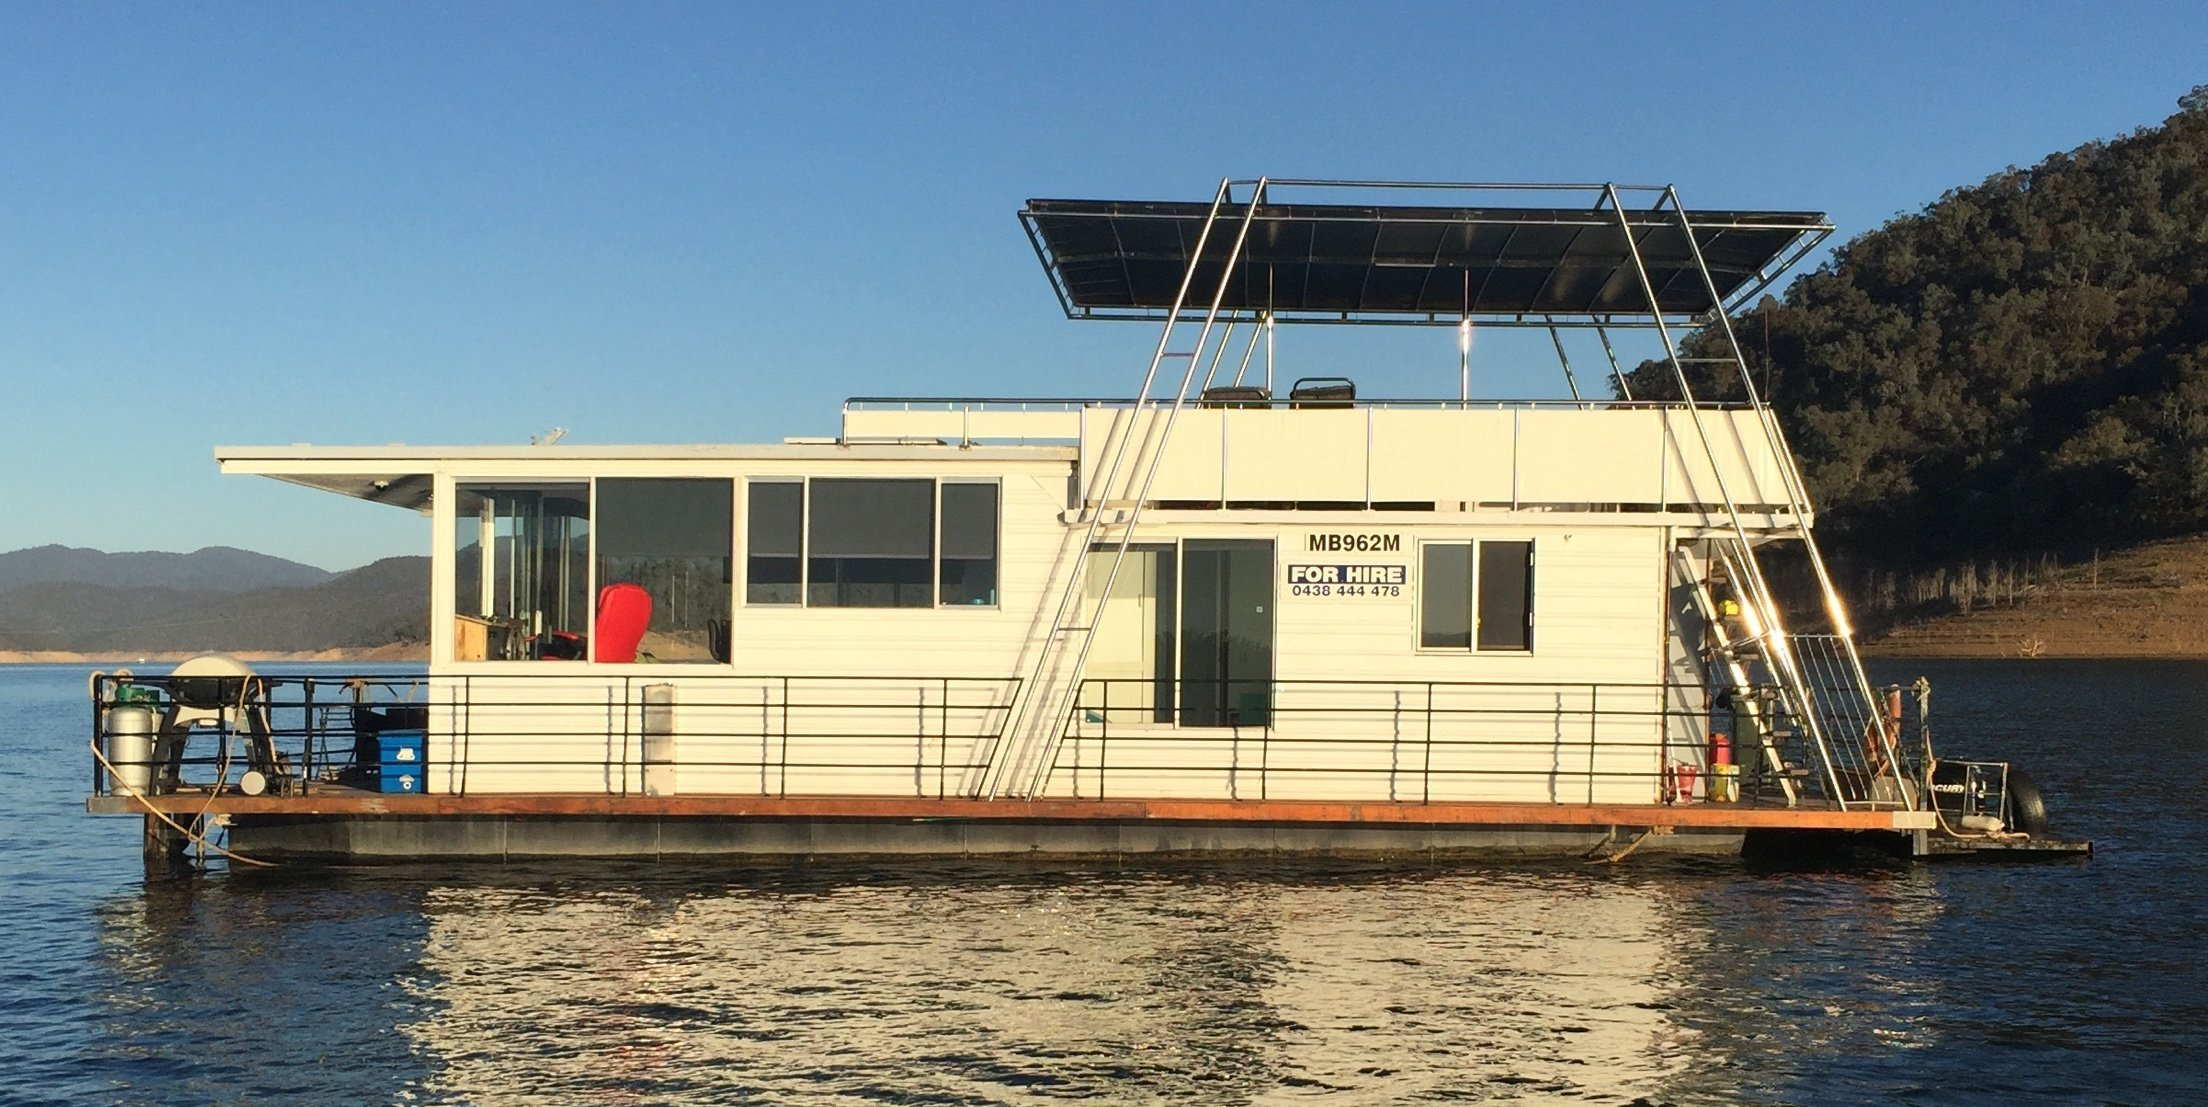 Exterior view of the house boat